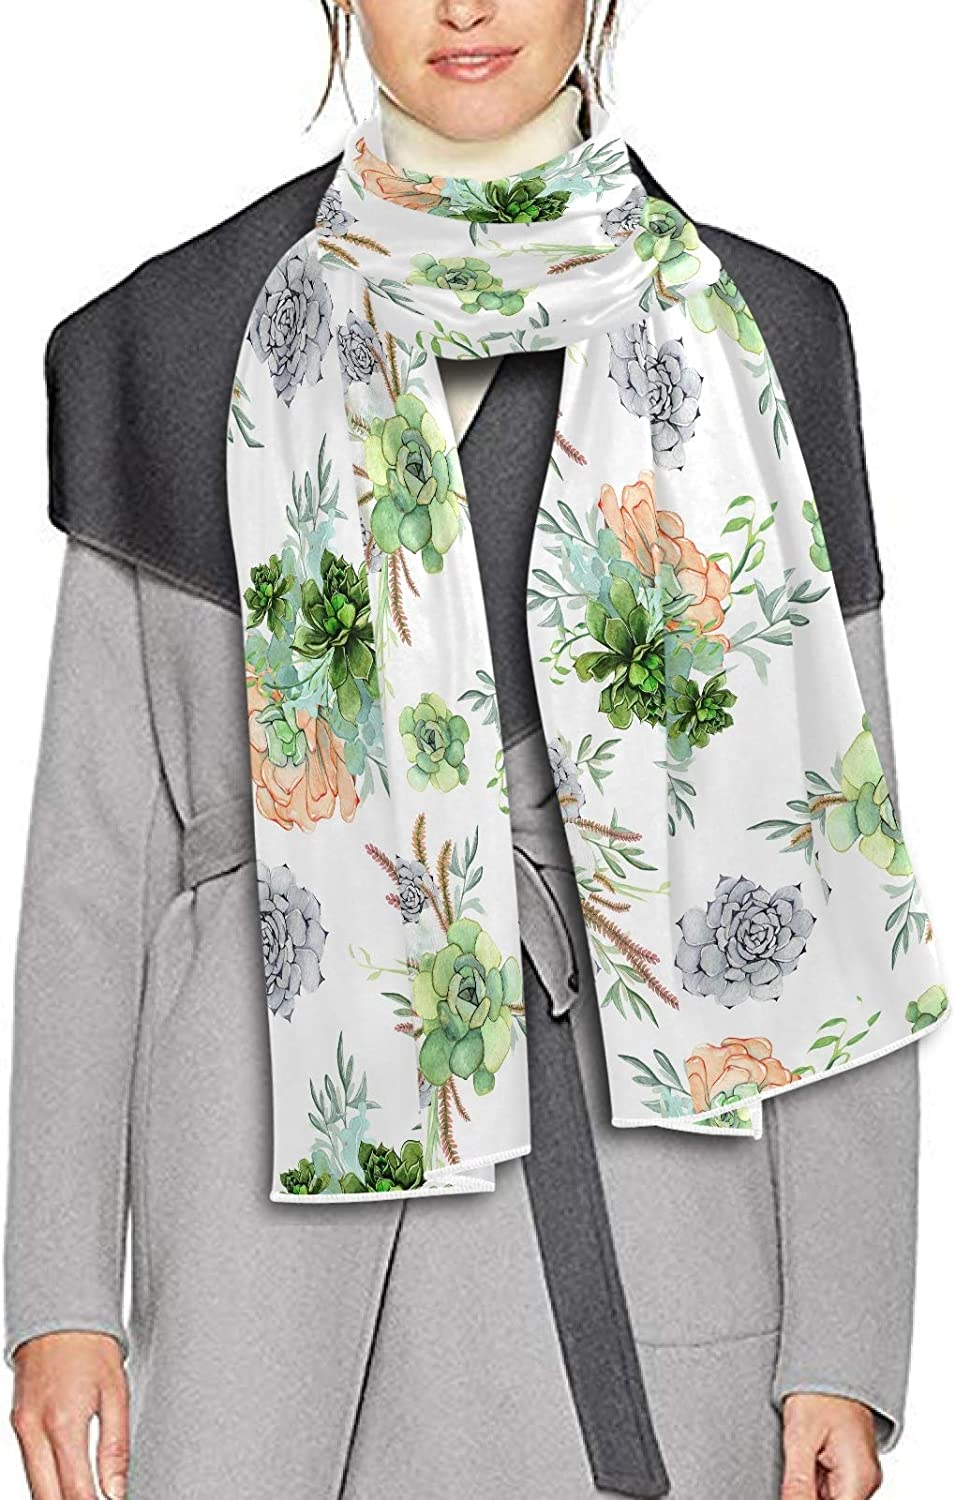 Scarf for Women and Men Succulent Plants Printed Shawl Wraps Blanket Scarf Thick Soft Winter Large Scarves Lightweight